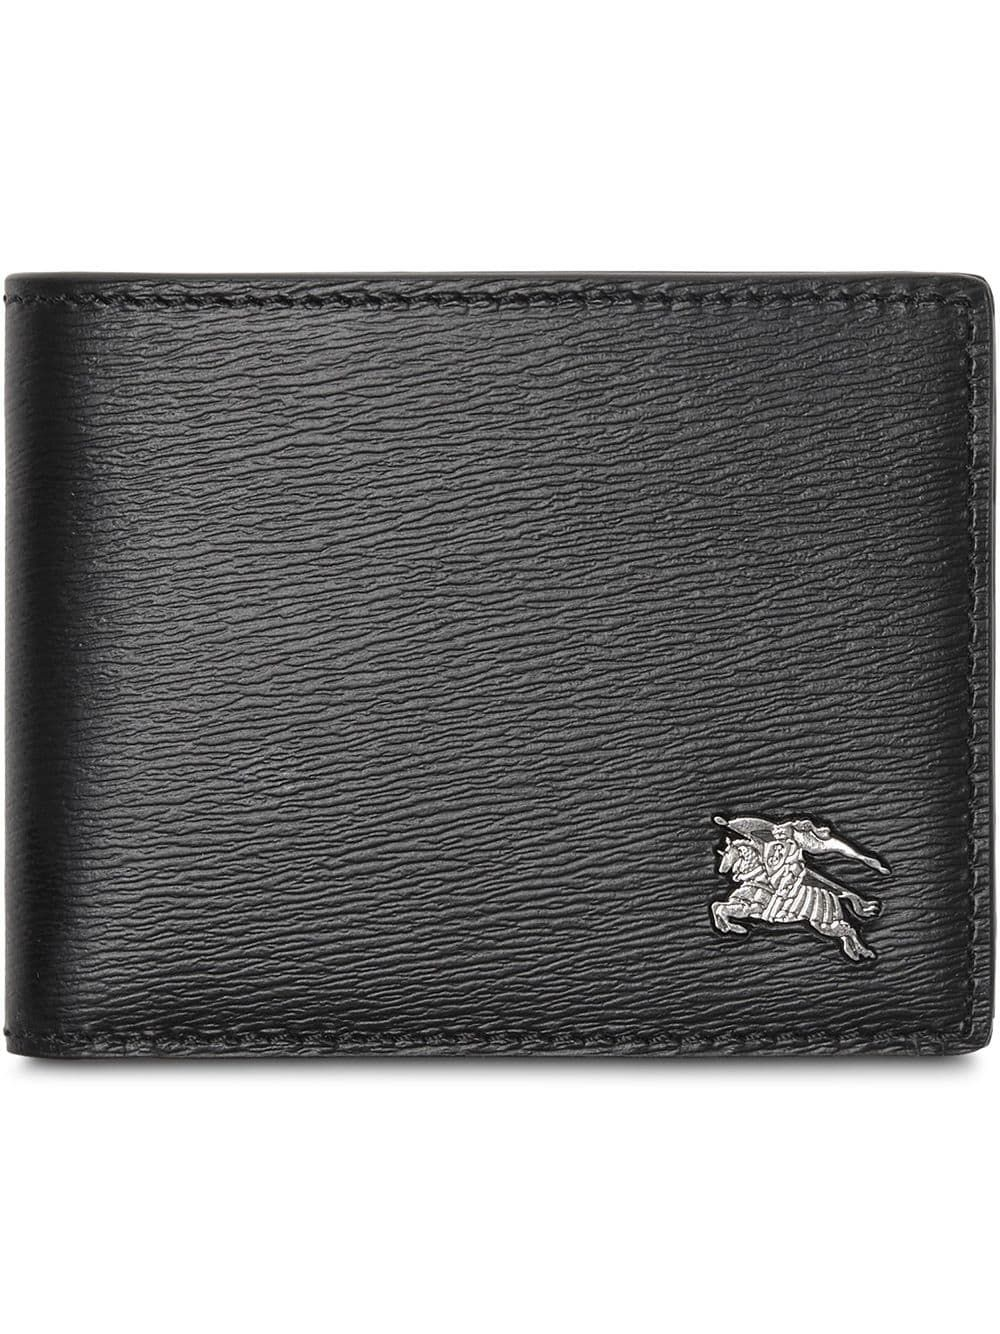 07ea6eac Burberry London Bifold Wallet in 2019 | Products | Burberry, Wallet ...